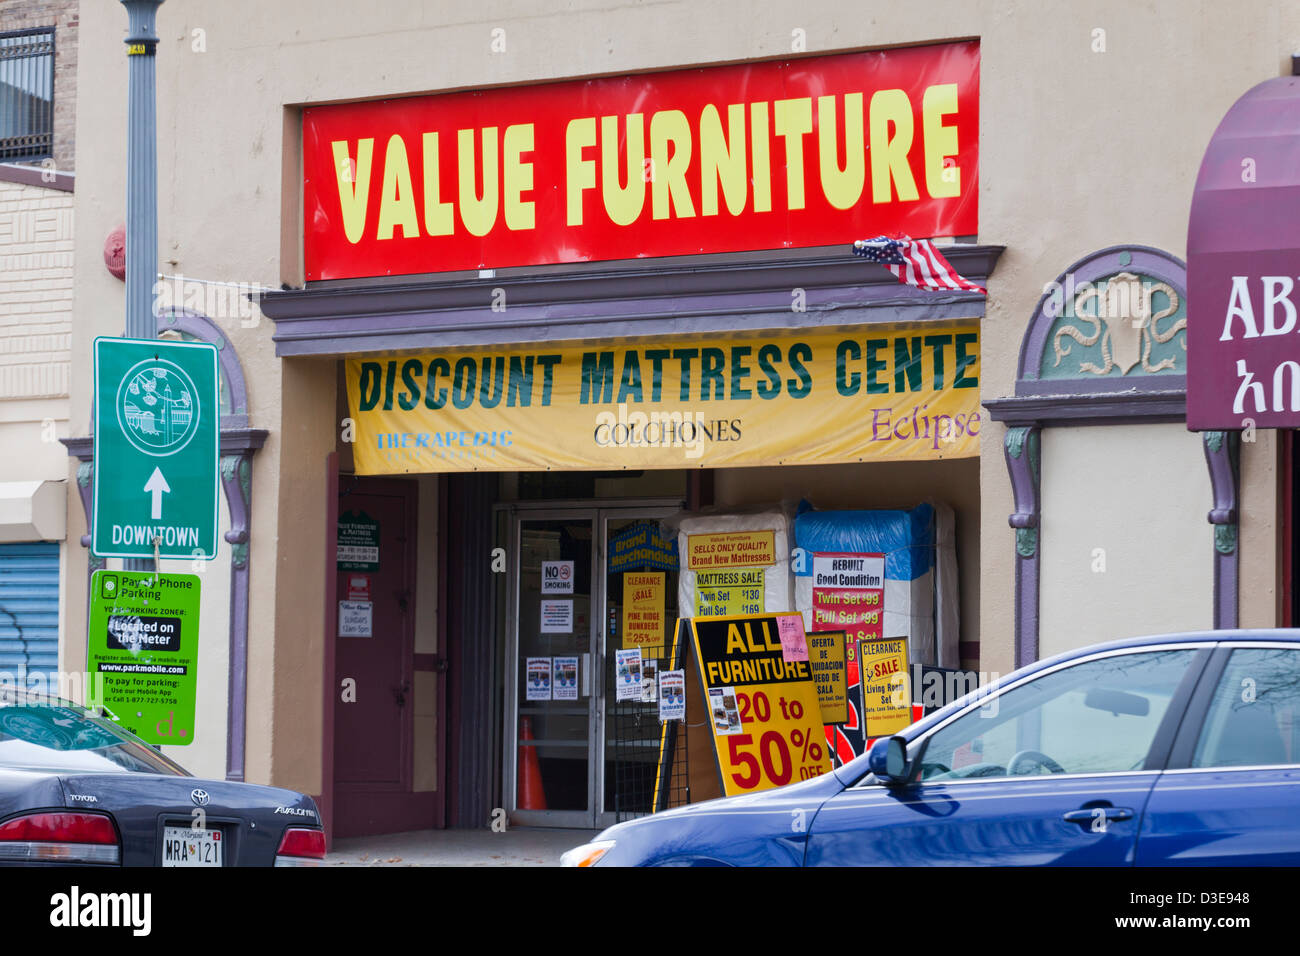 Discount Furniture Store Immagini Stock